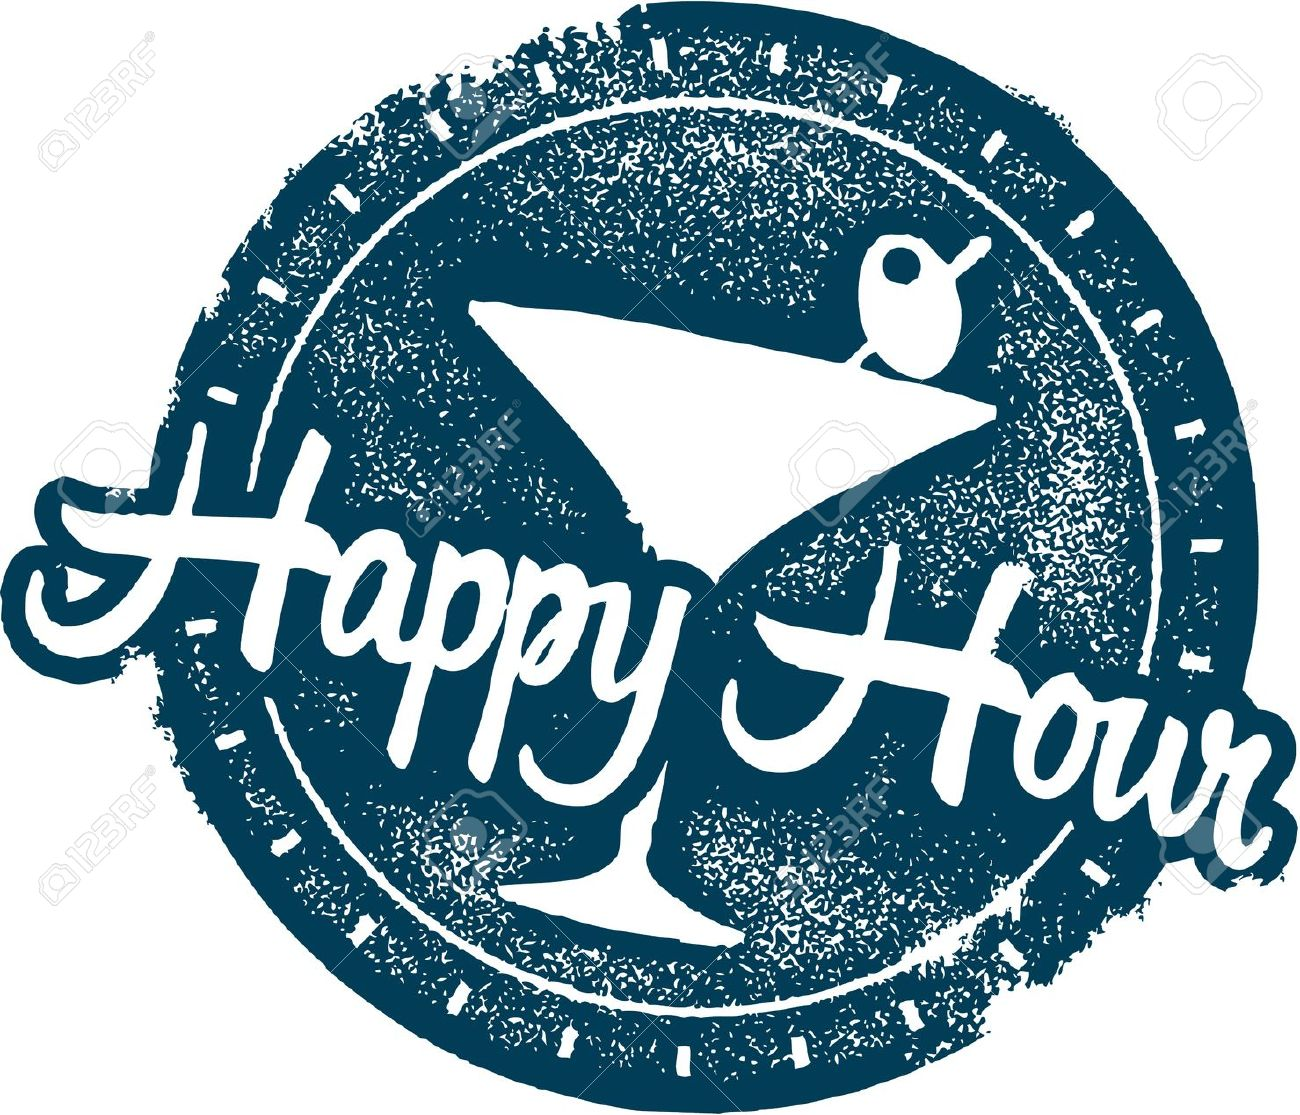 Happy hour clipart graphic transparent stock Free Cocktail Hour Cliparts, Download Free Clip Art, Free Clip Art ... graphic transparent stock